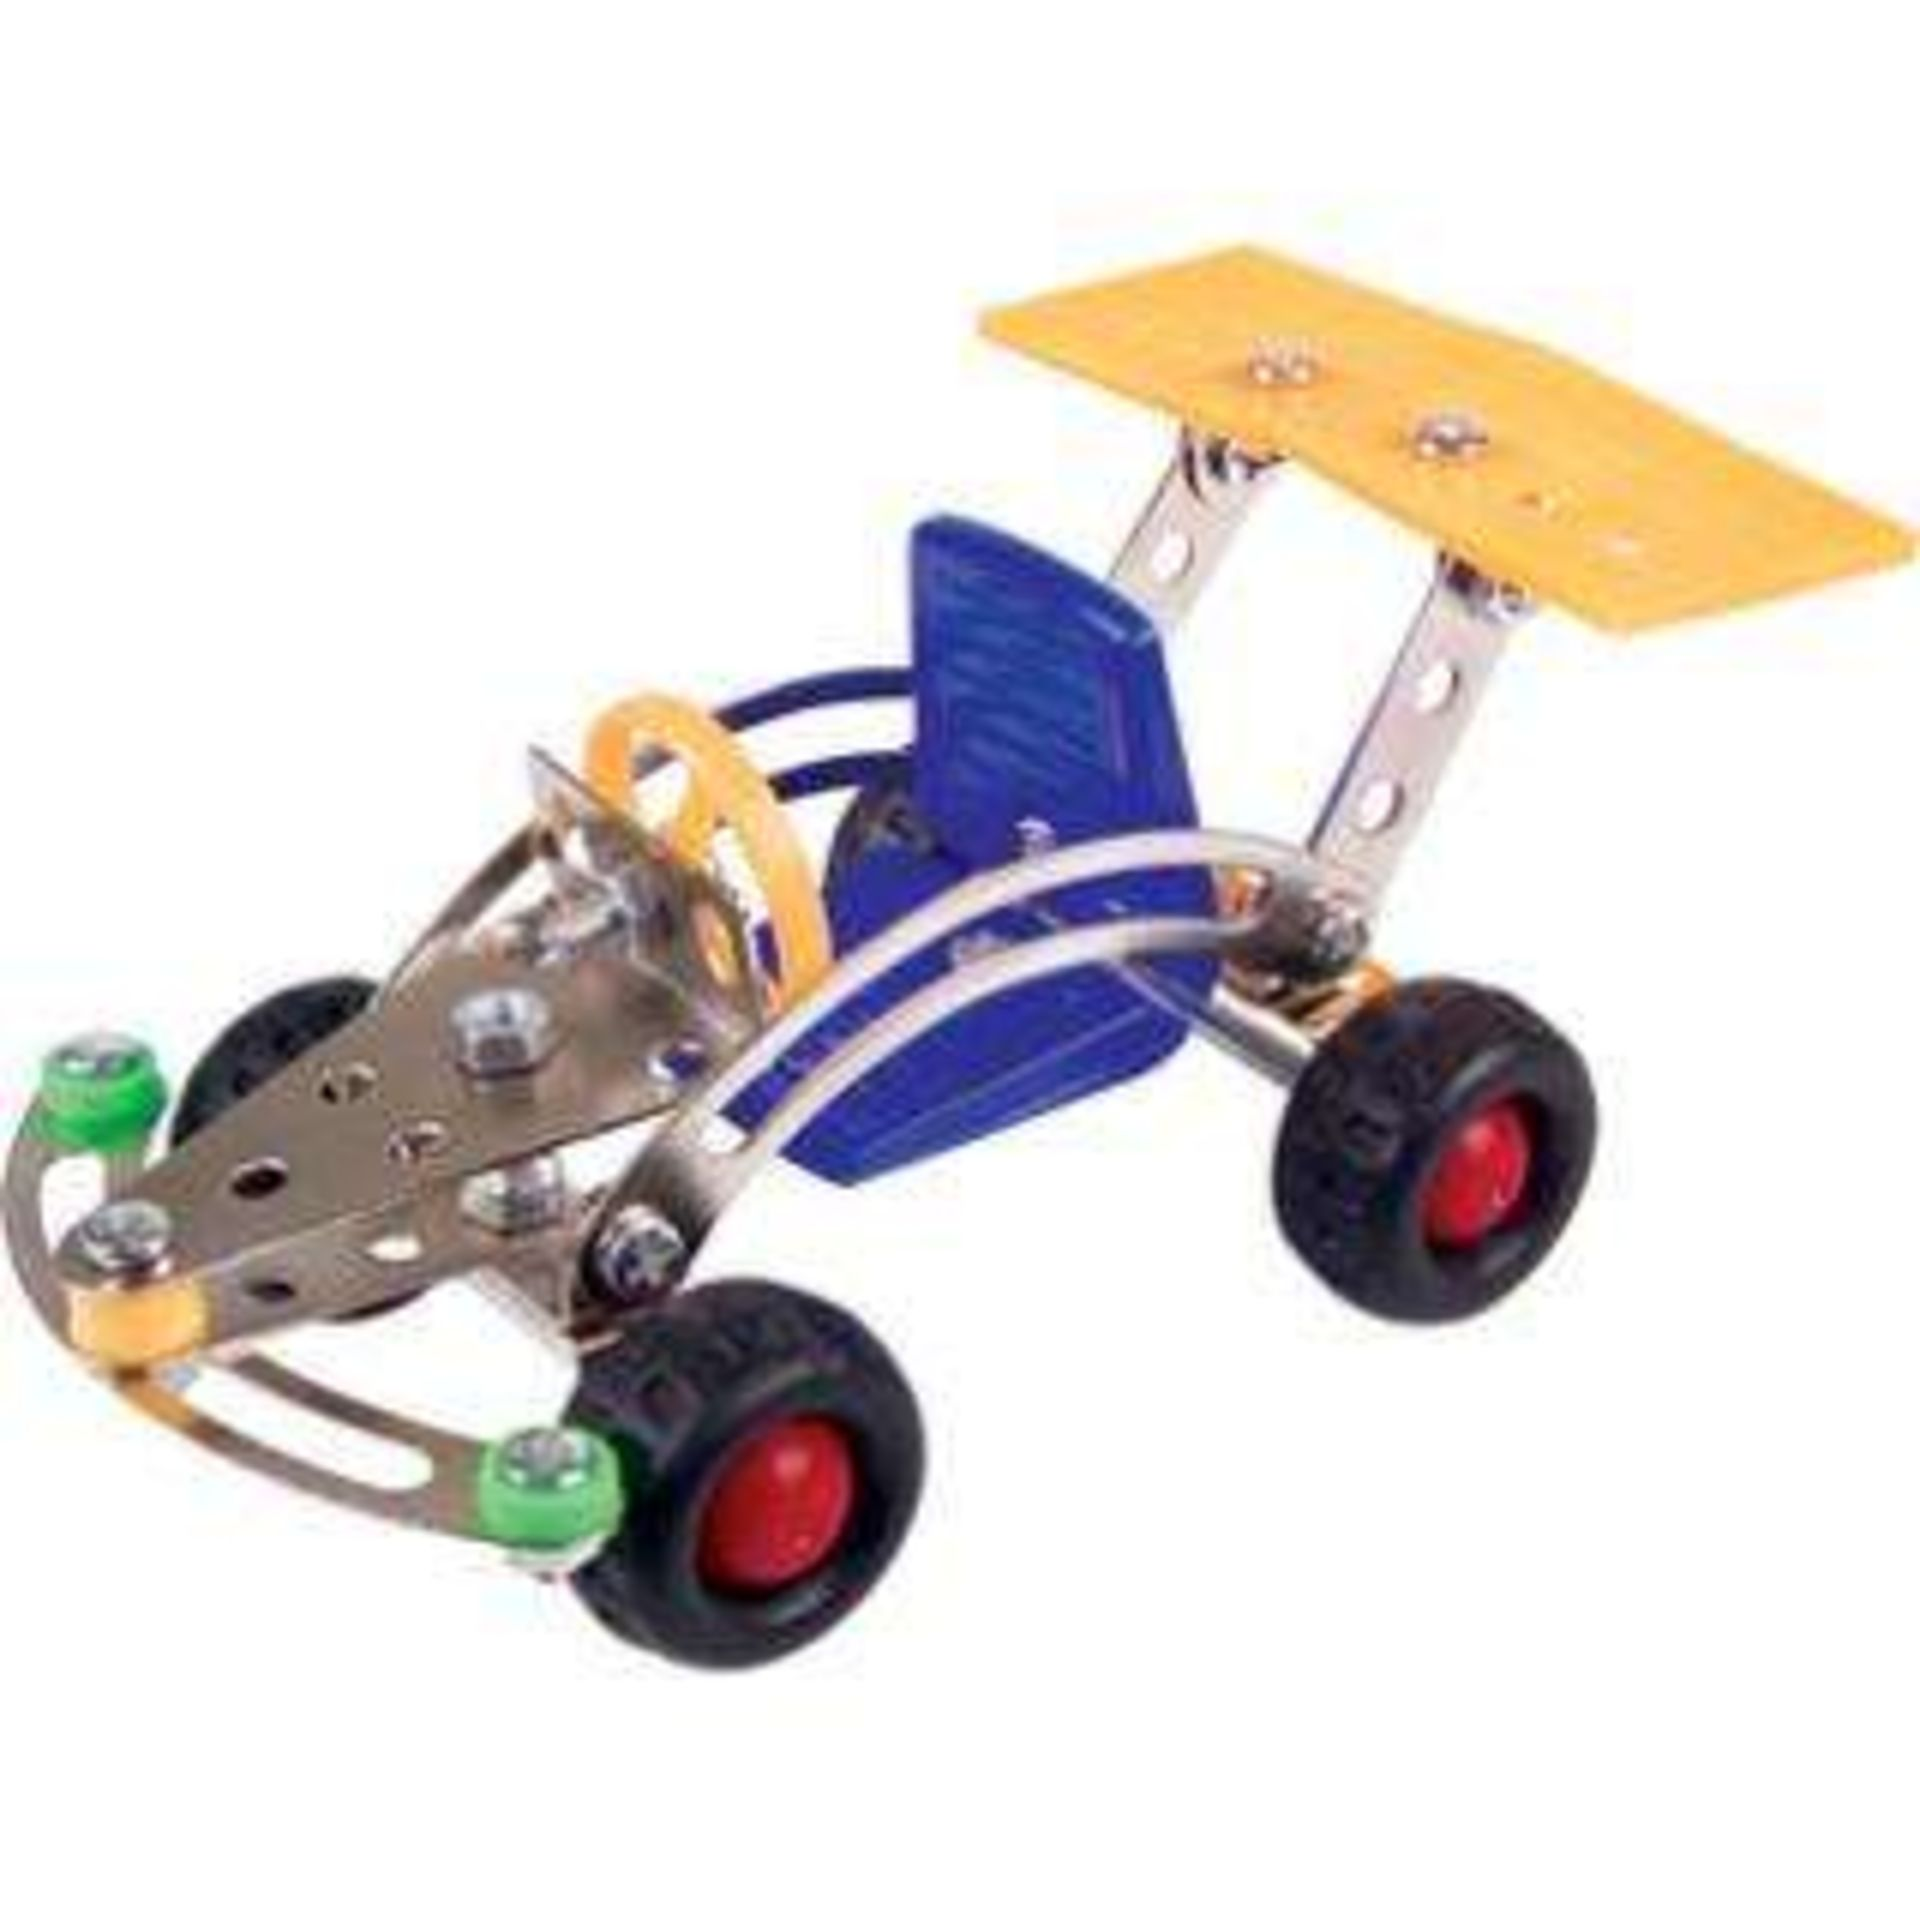 Lot 12579 - V Brand New Small Meccano Style Set Assorted - Builds Cars - Planes - Motorcycles etc